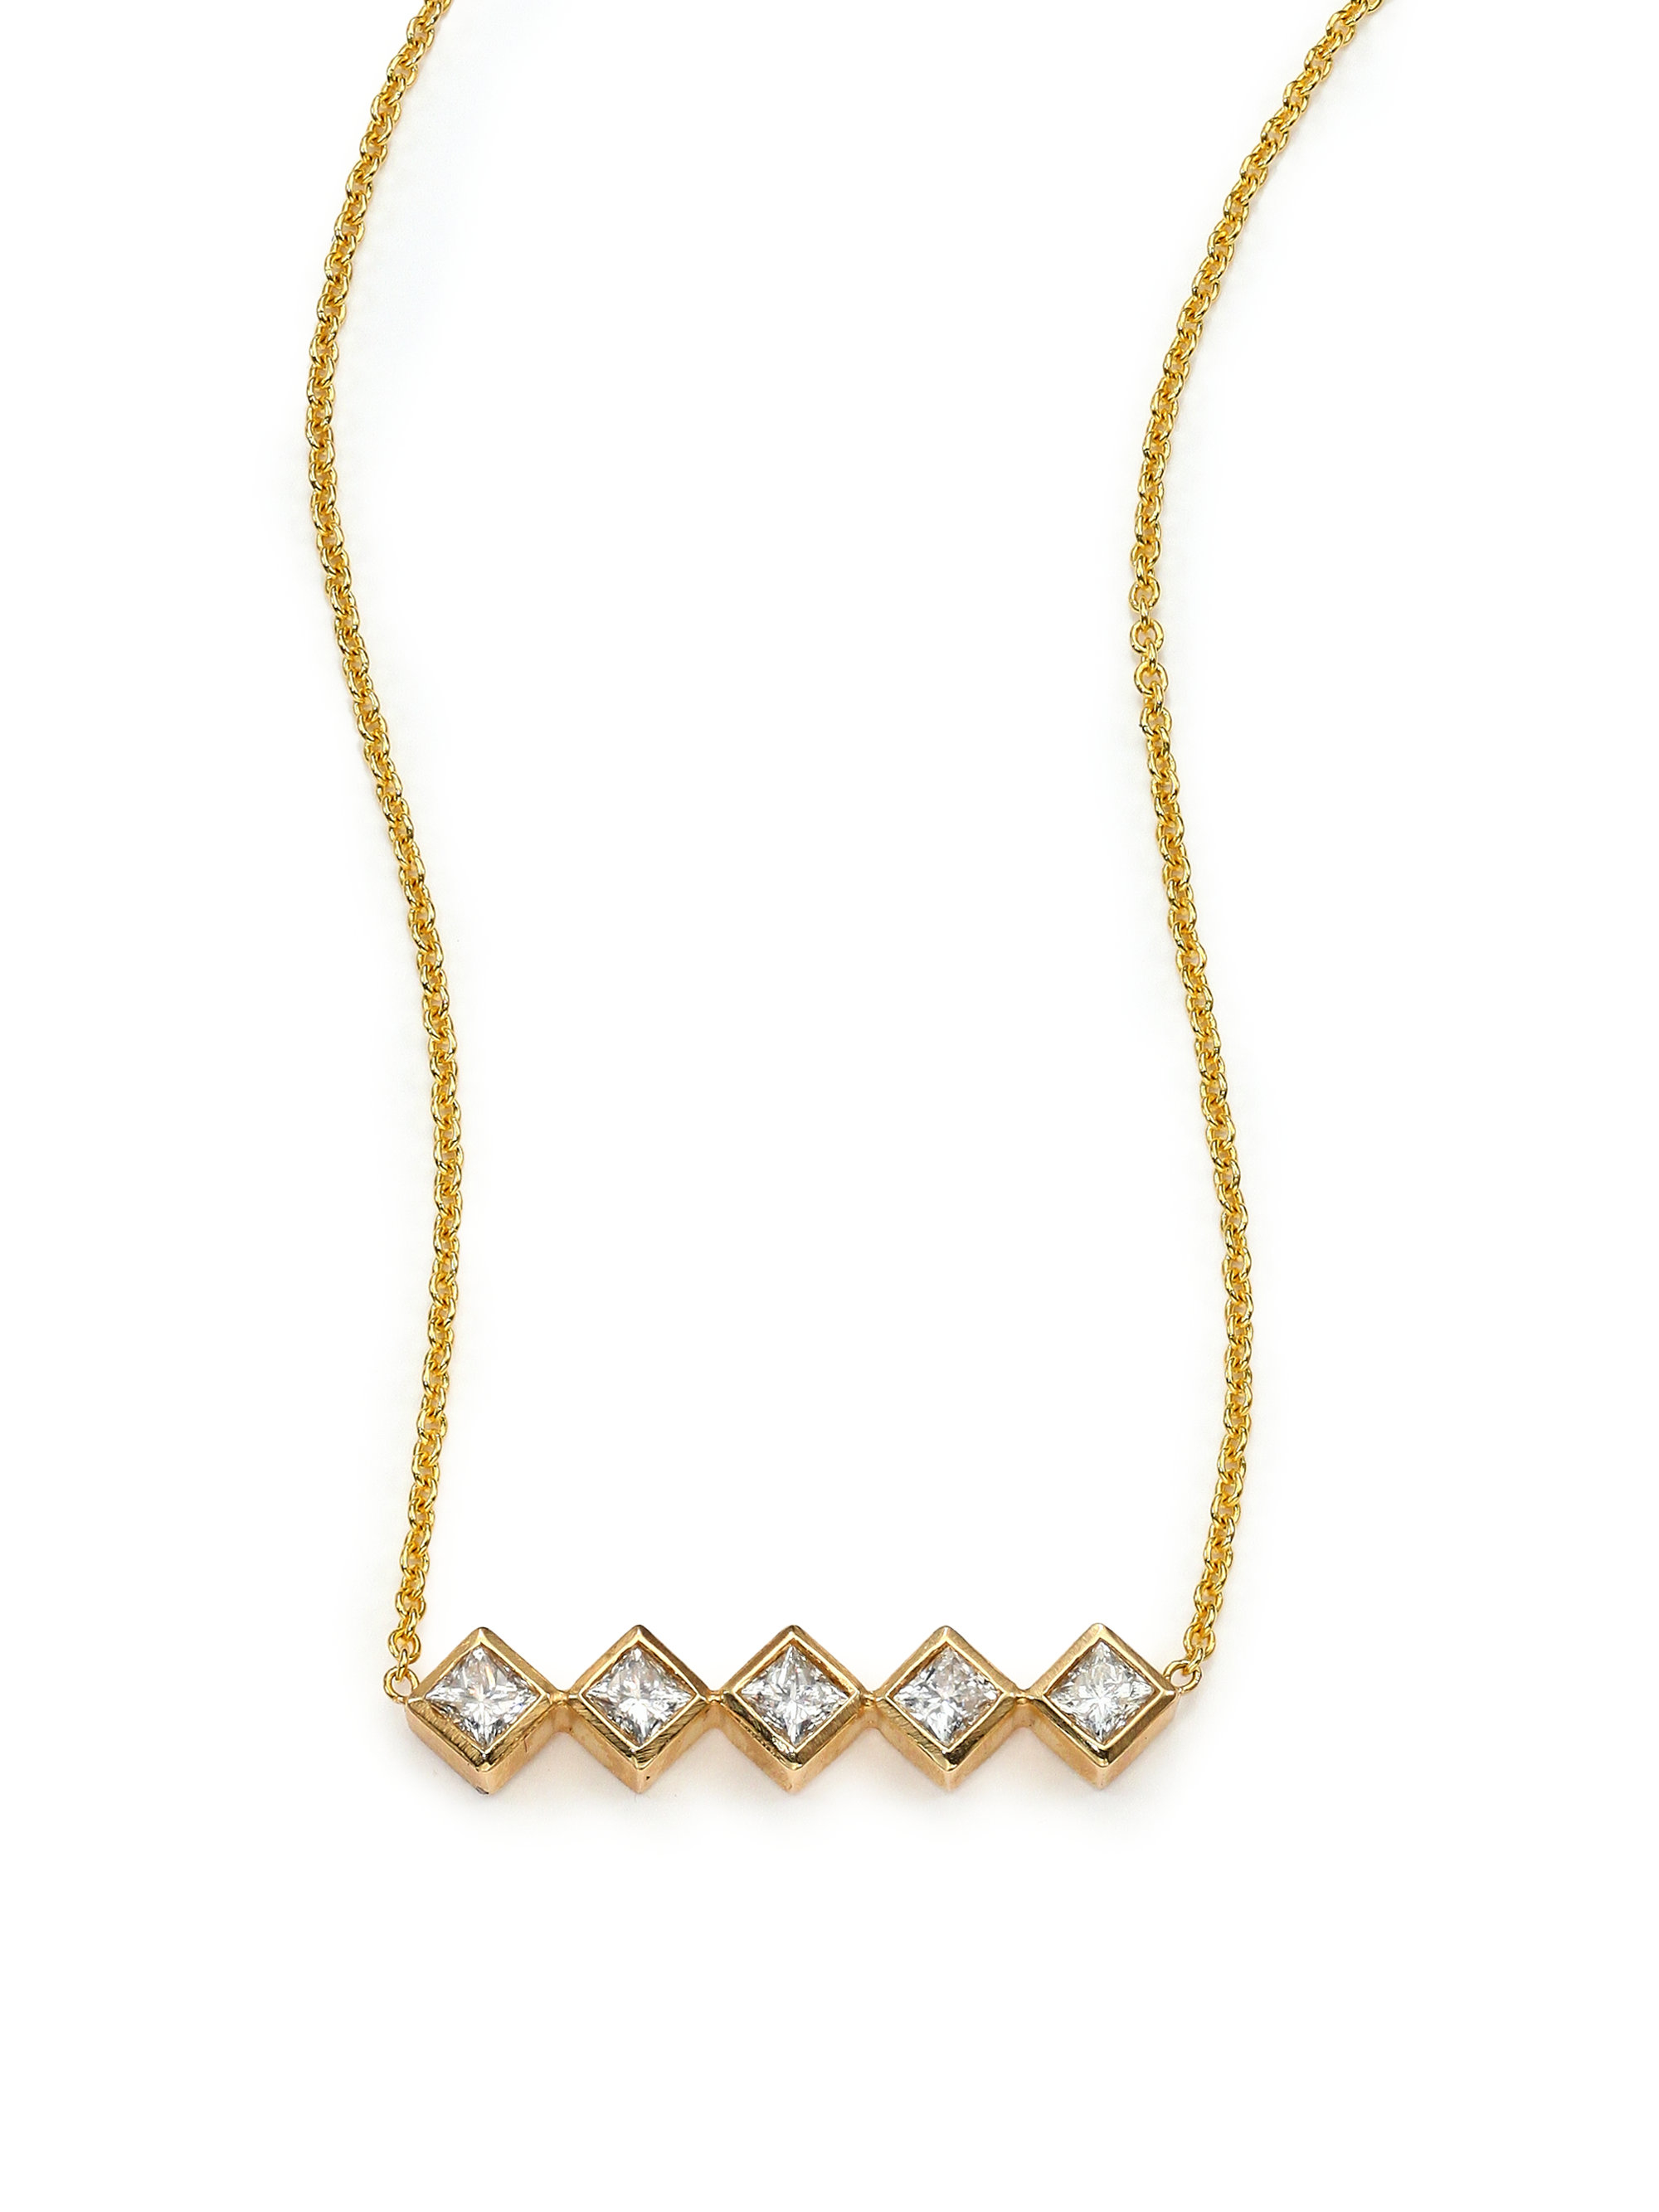 zoe chicco 14k yellow gold princess necklace in